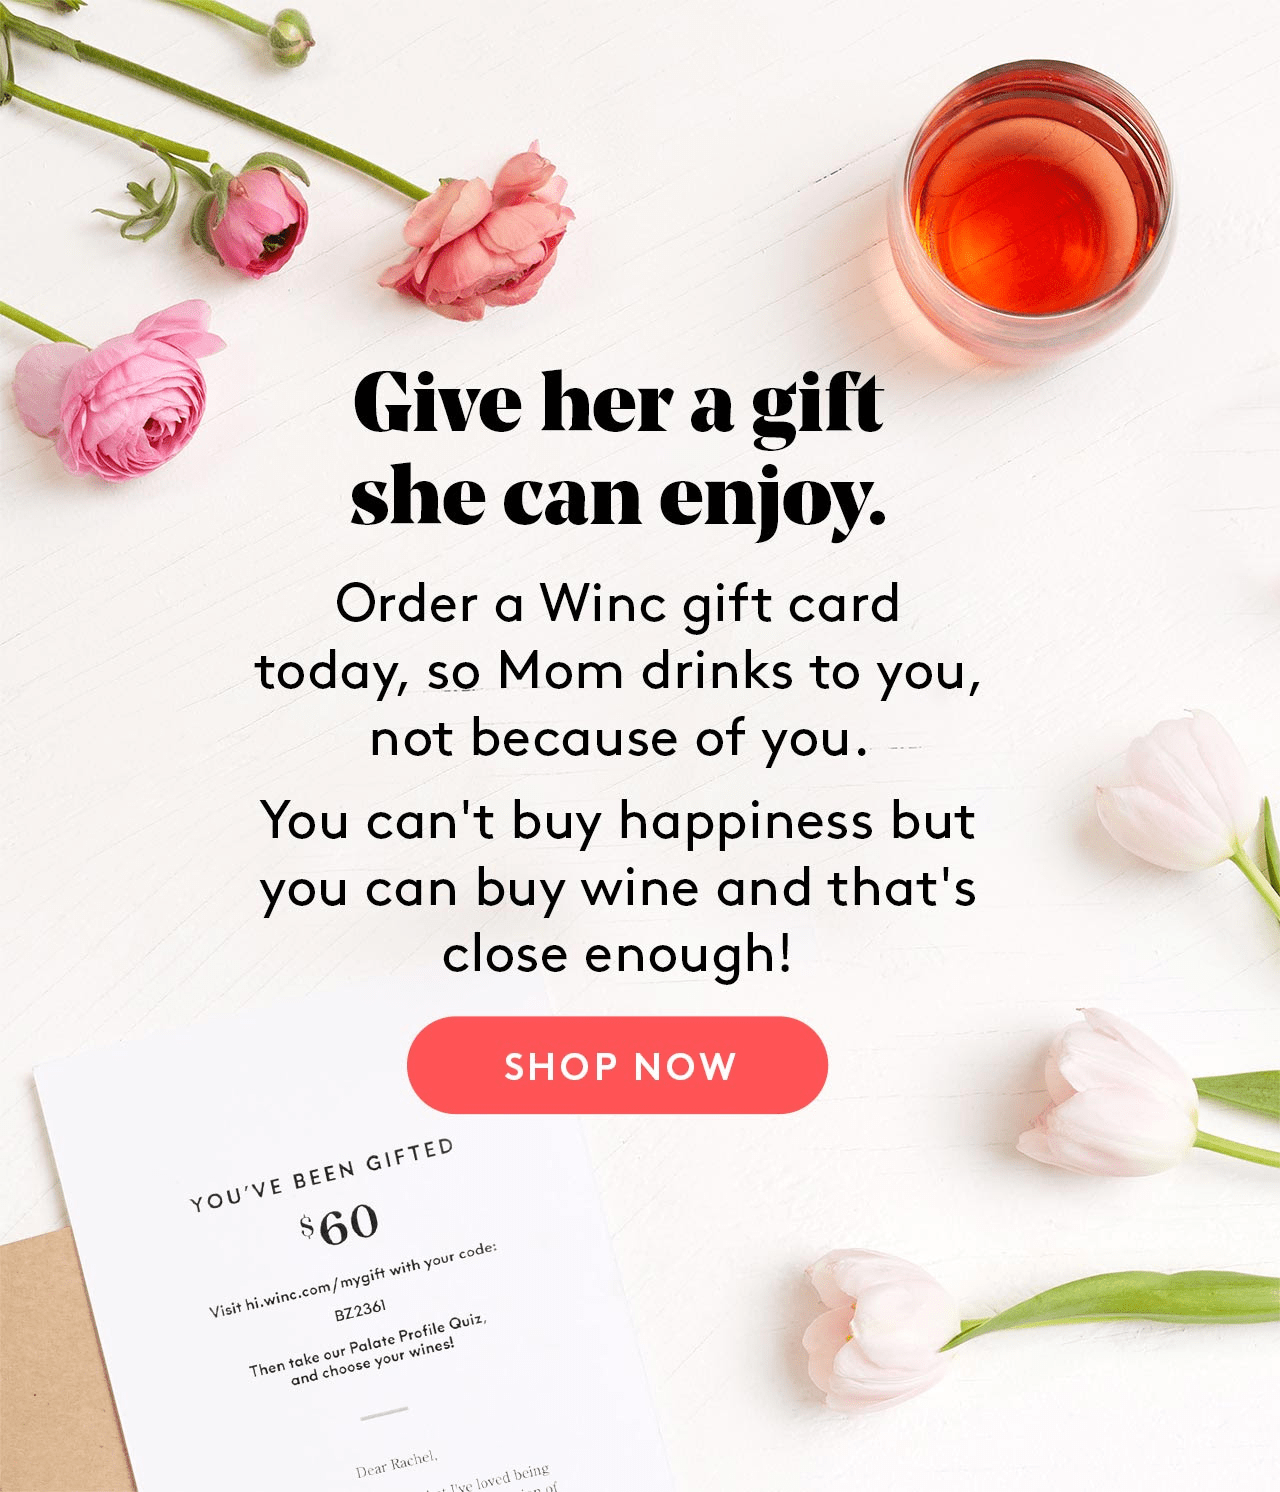 Winc Mothers Day Gift Ideas Winc Gift Cards Coupon Hello